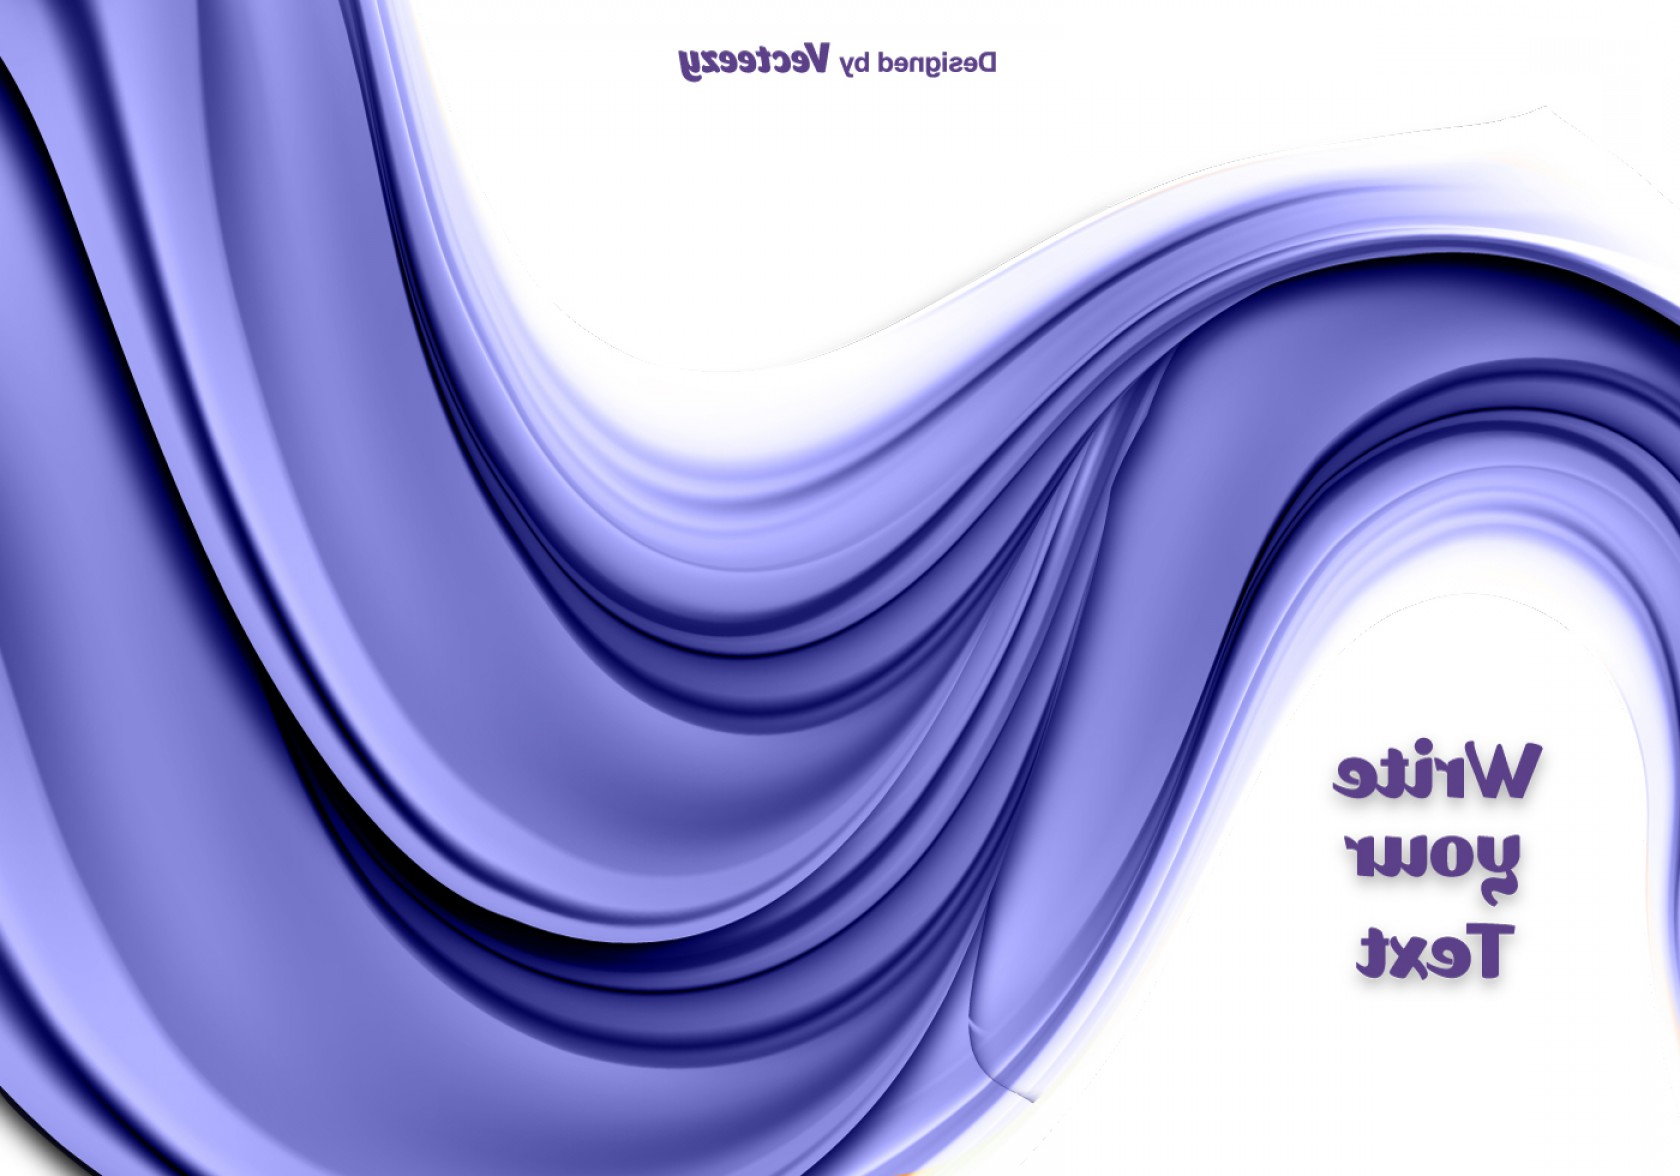 Vave Vector: Abstract Purple Flowing Wave Vector